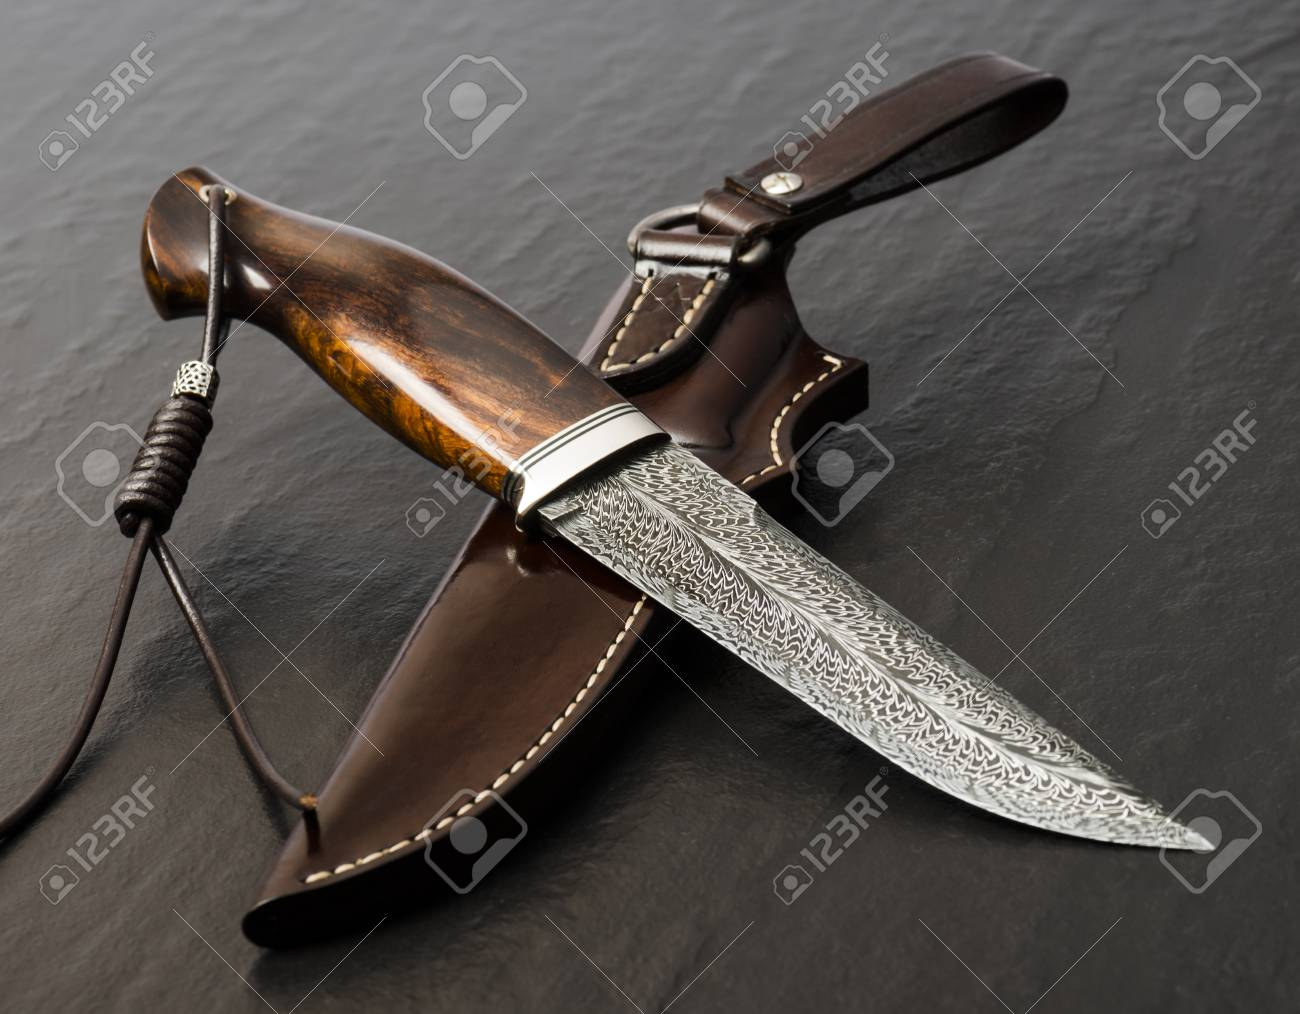 Hunting Knife Handmade On A Black Background Leather Sheath Stock Photo Picture And Royalty Free Image Image 122660808